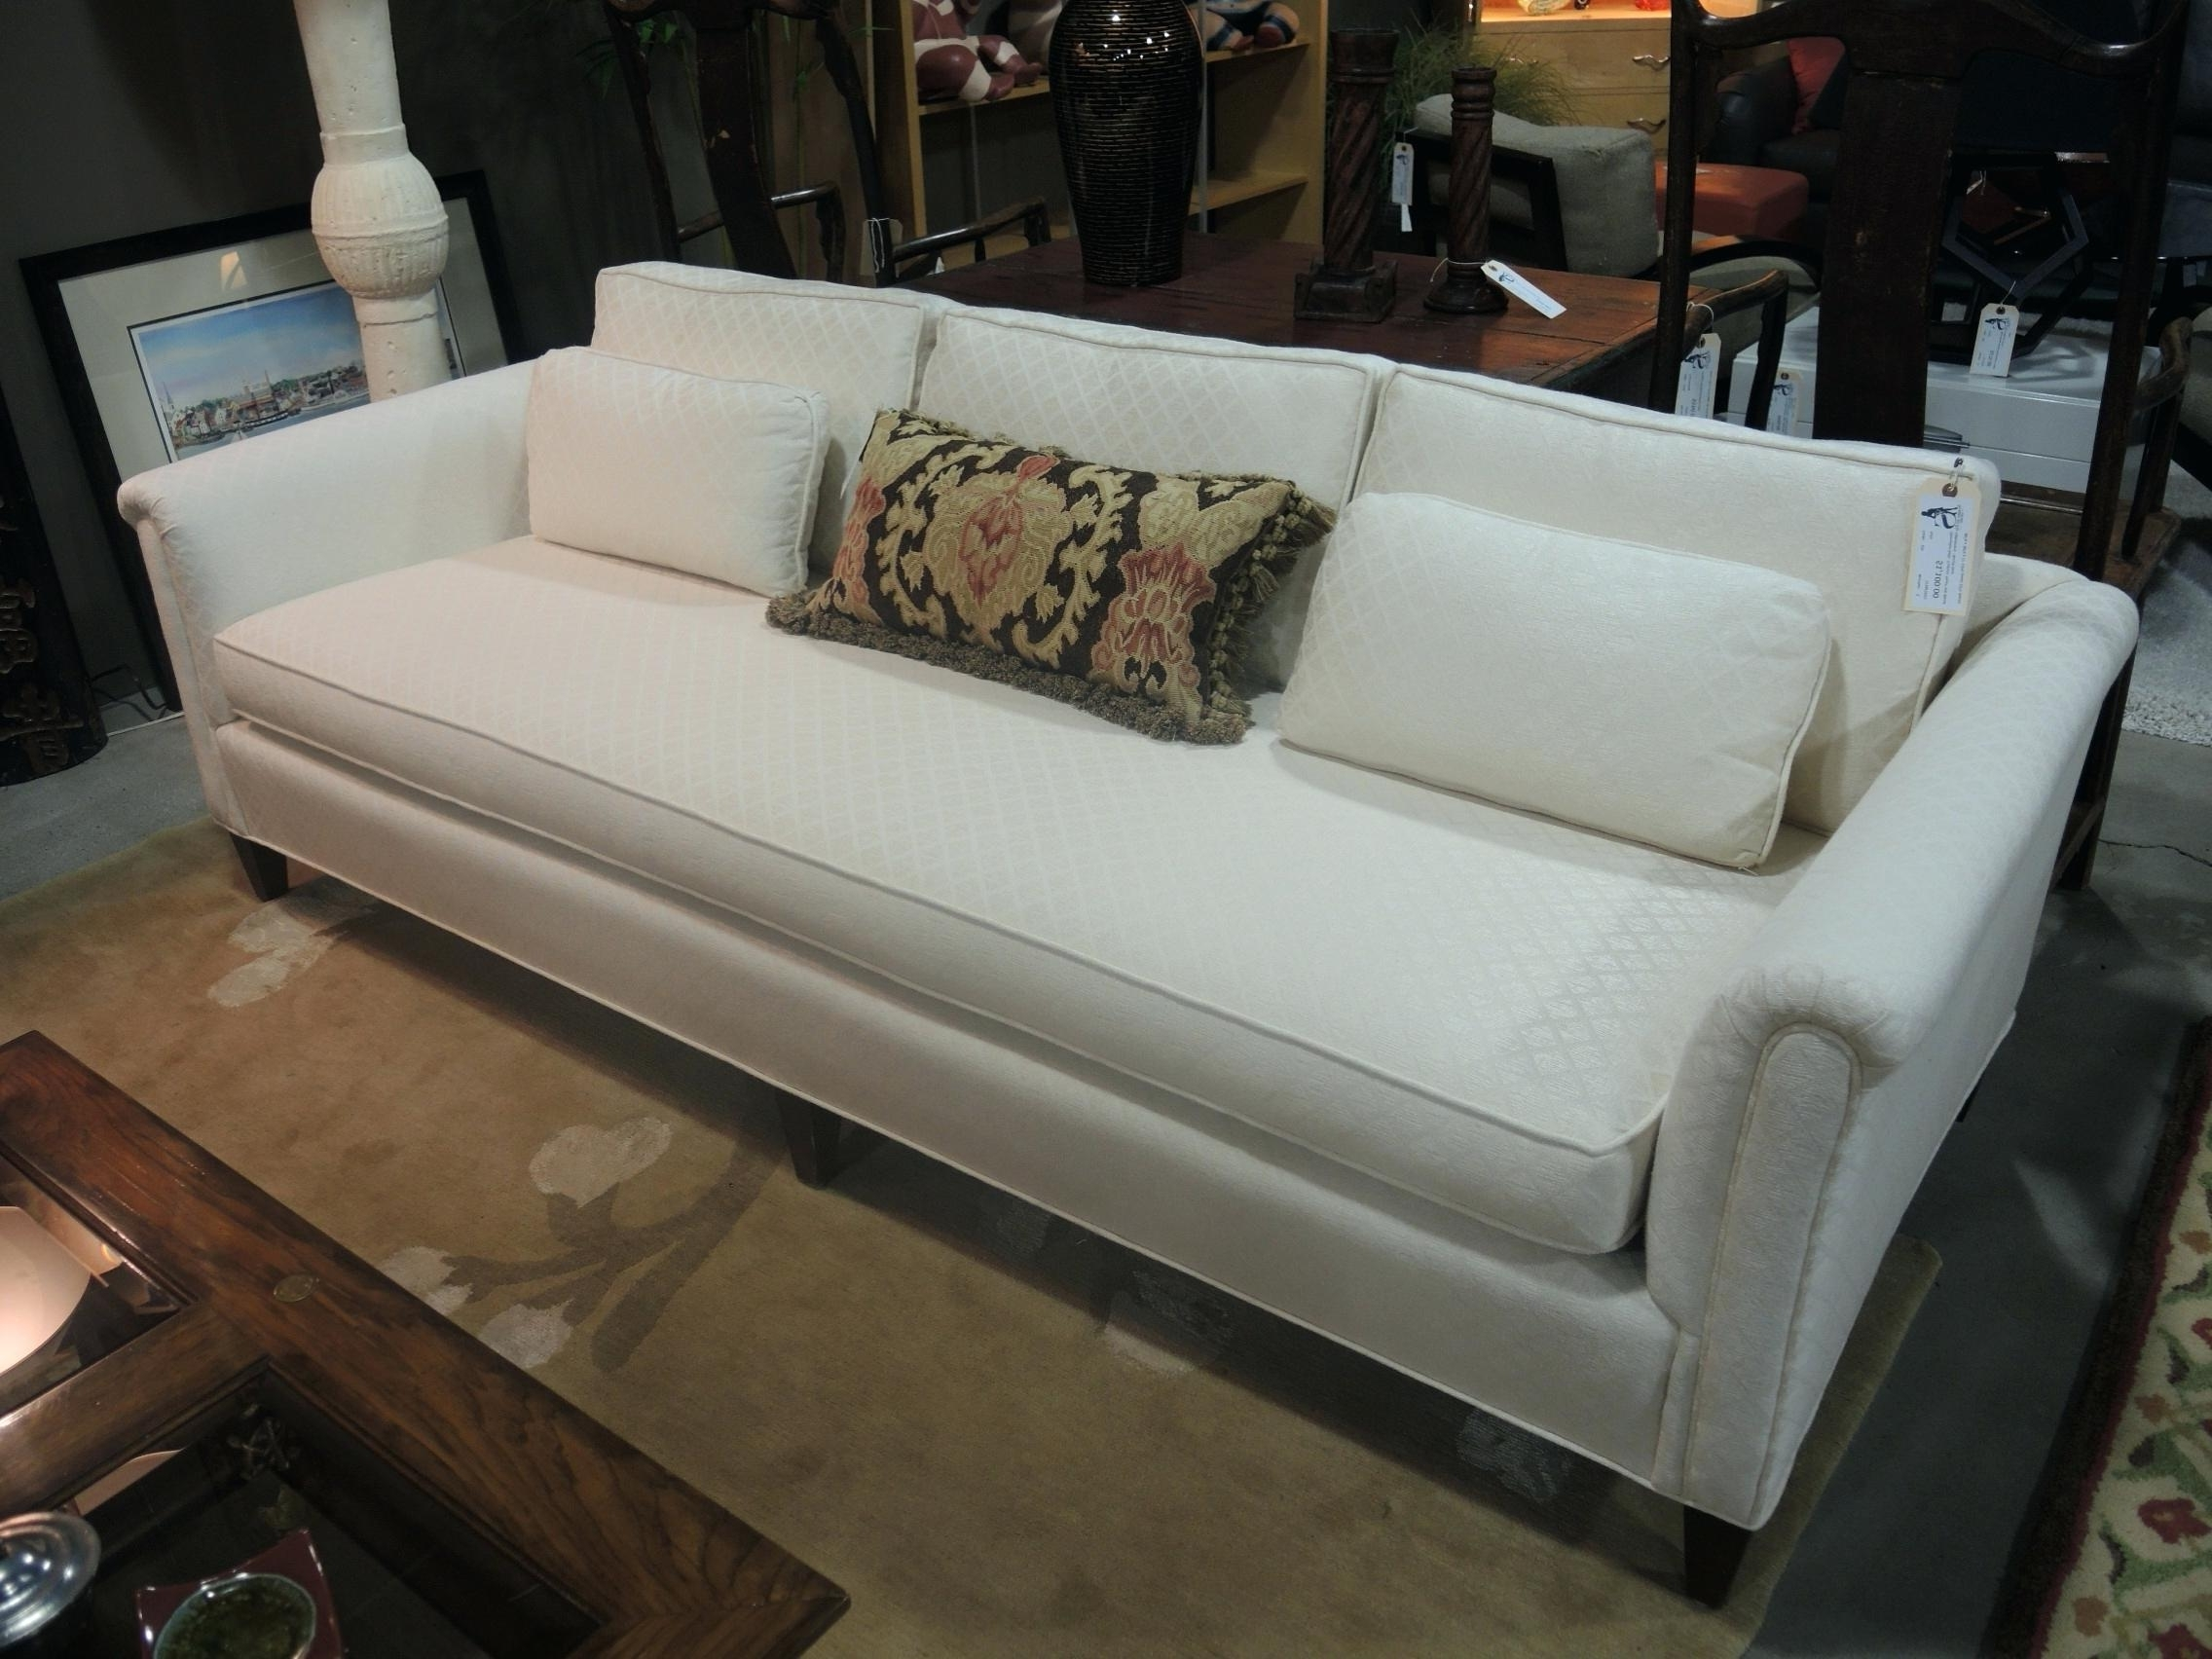 Deep Cushion Sofas Regarding Most Recent Deep Cushion Couch Cushioned Leather Sectional Couches (View 5 of 20)